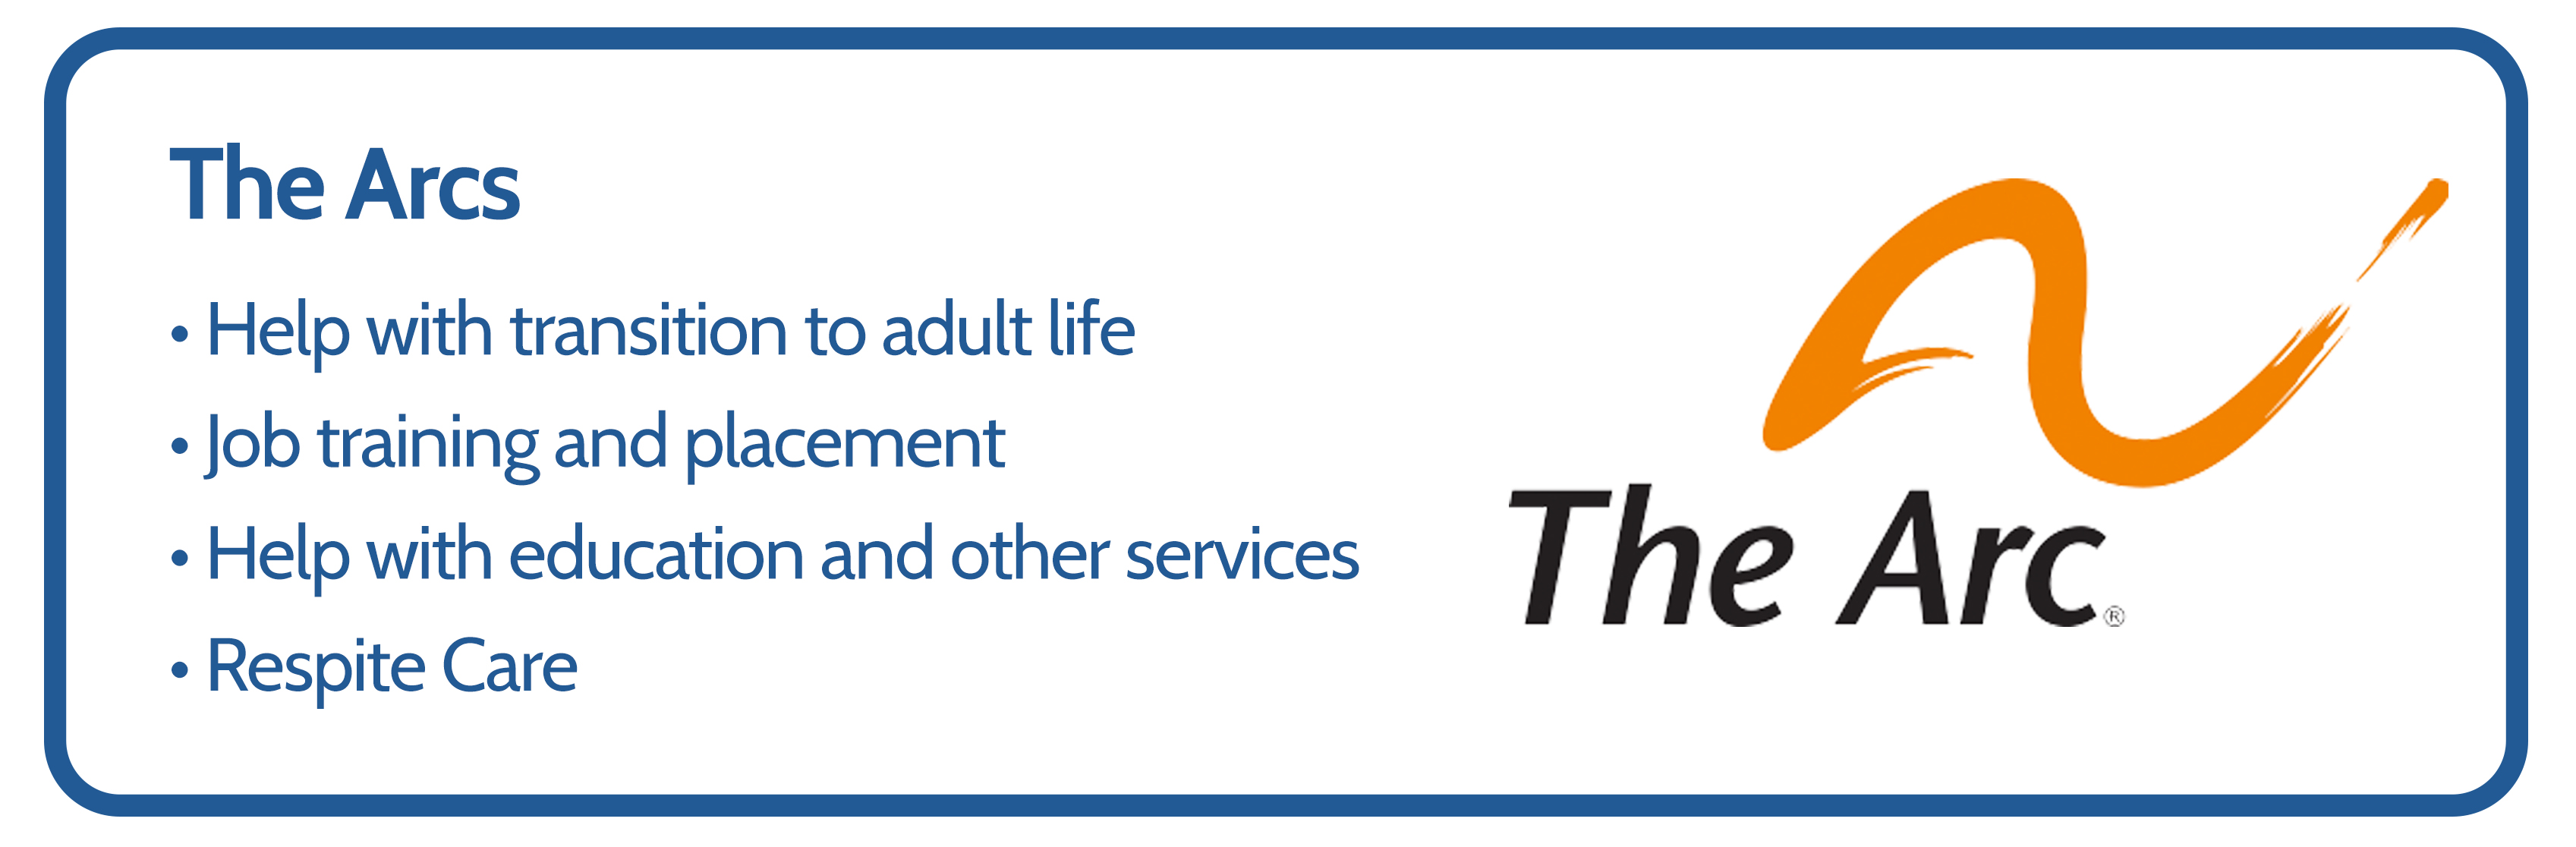 The Arcs provide the following services. 1. Help with transition to adult life. 2. Job training and placement. 3. Help with education and other services. 4. Respite care.